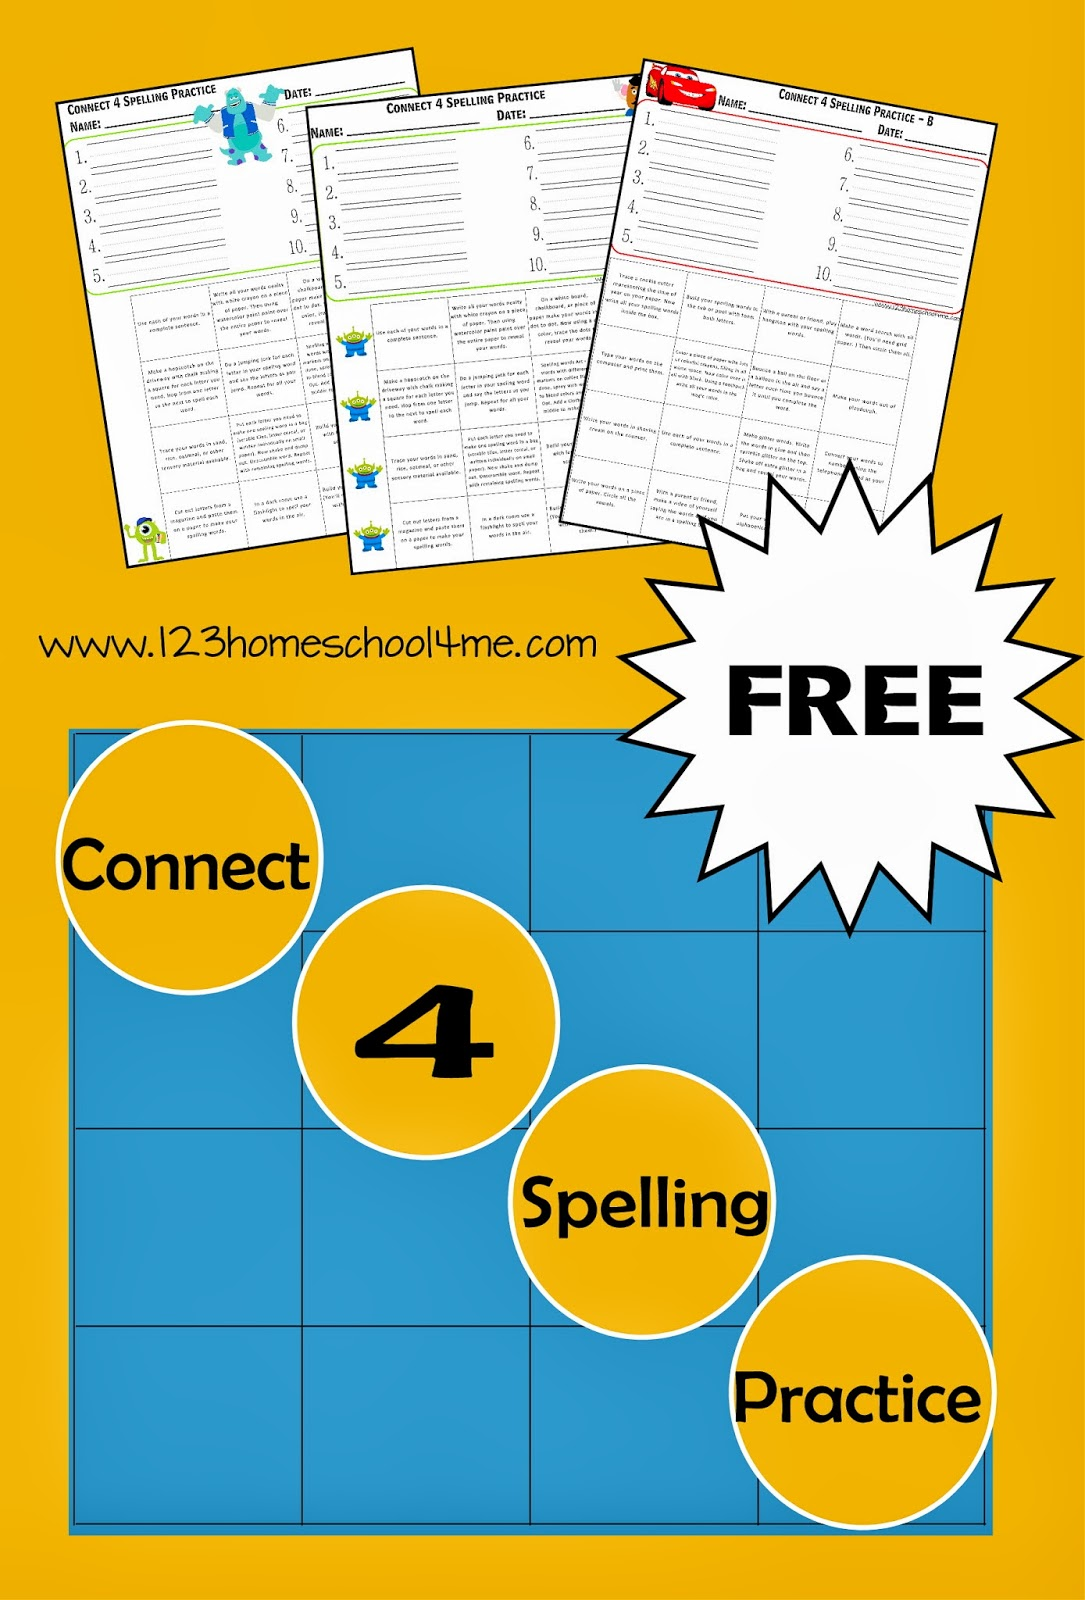 Free Printable Spelling Worksheets 3rd Grade : Free connect spelling practice